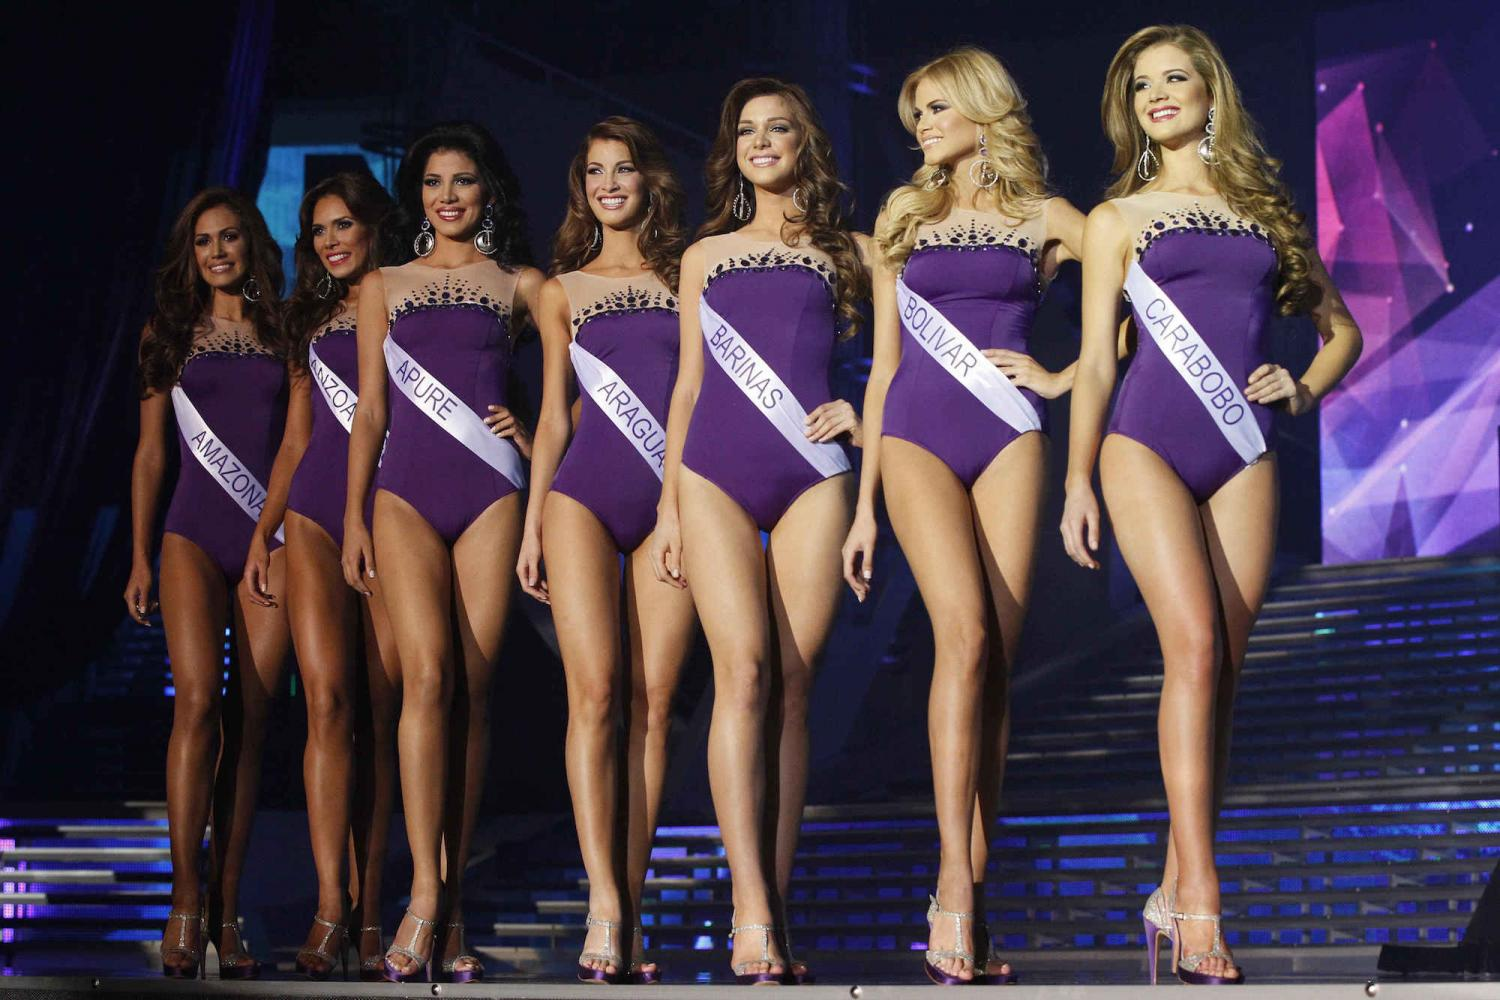 beauty contest is really degrading the women The women in the pageants are not just lovely they are smart too they do not look sickly they look healthy i really think that the only part of it that is degrading is the swimsuit competition the truth is that the woman degrades herself by choosing to participate in the beauty contest.